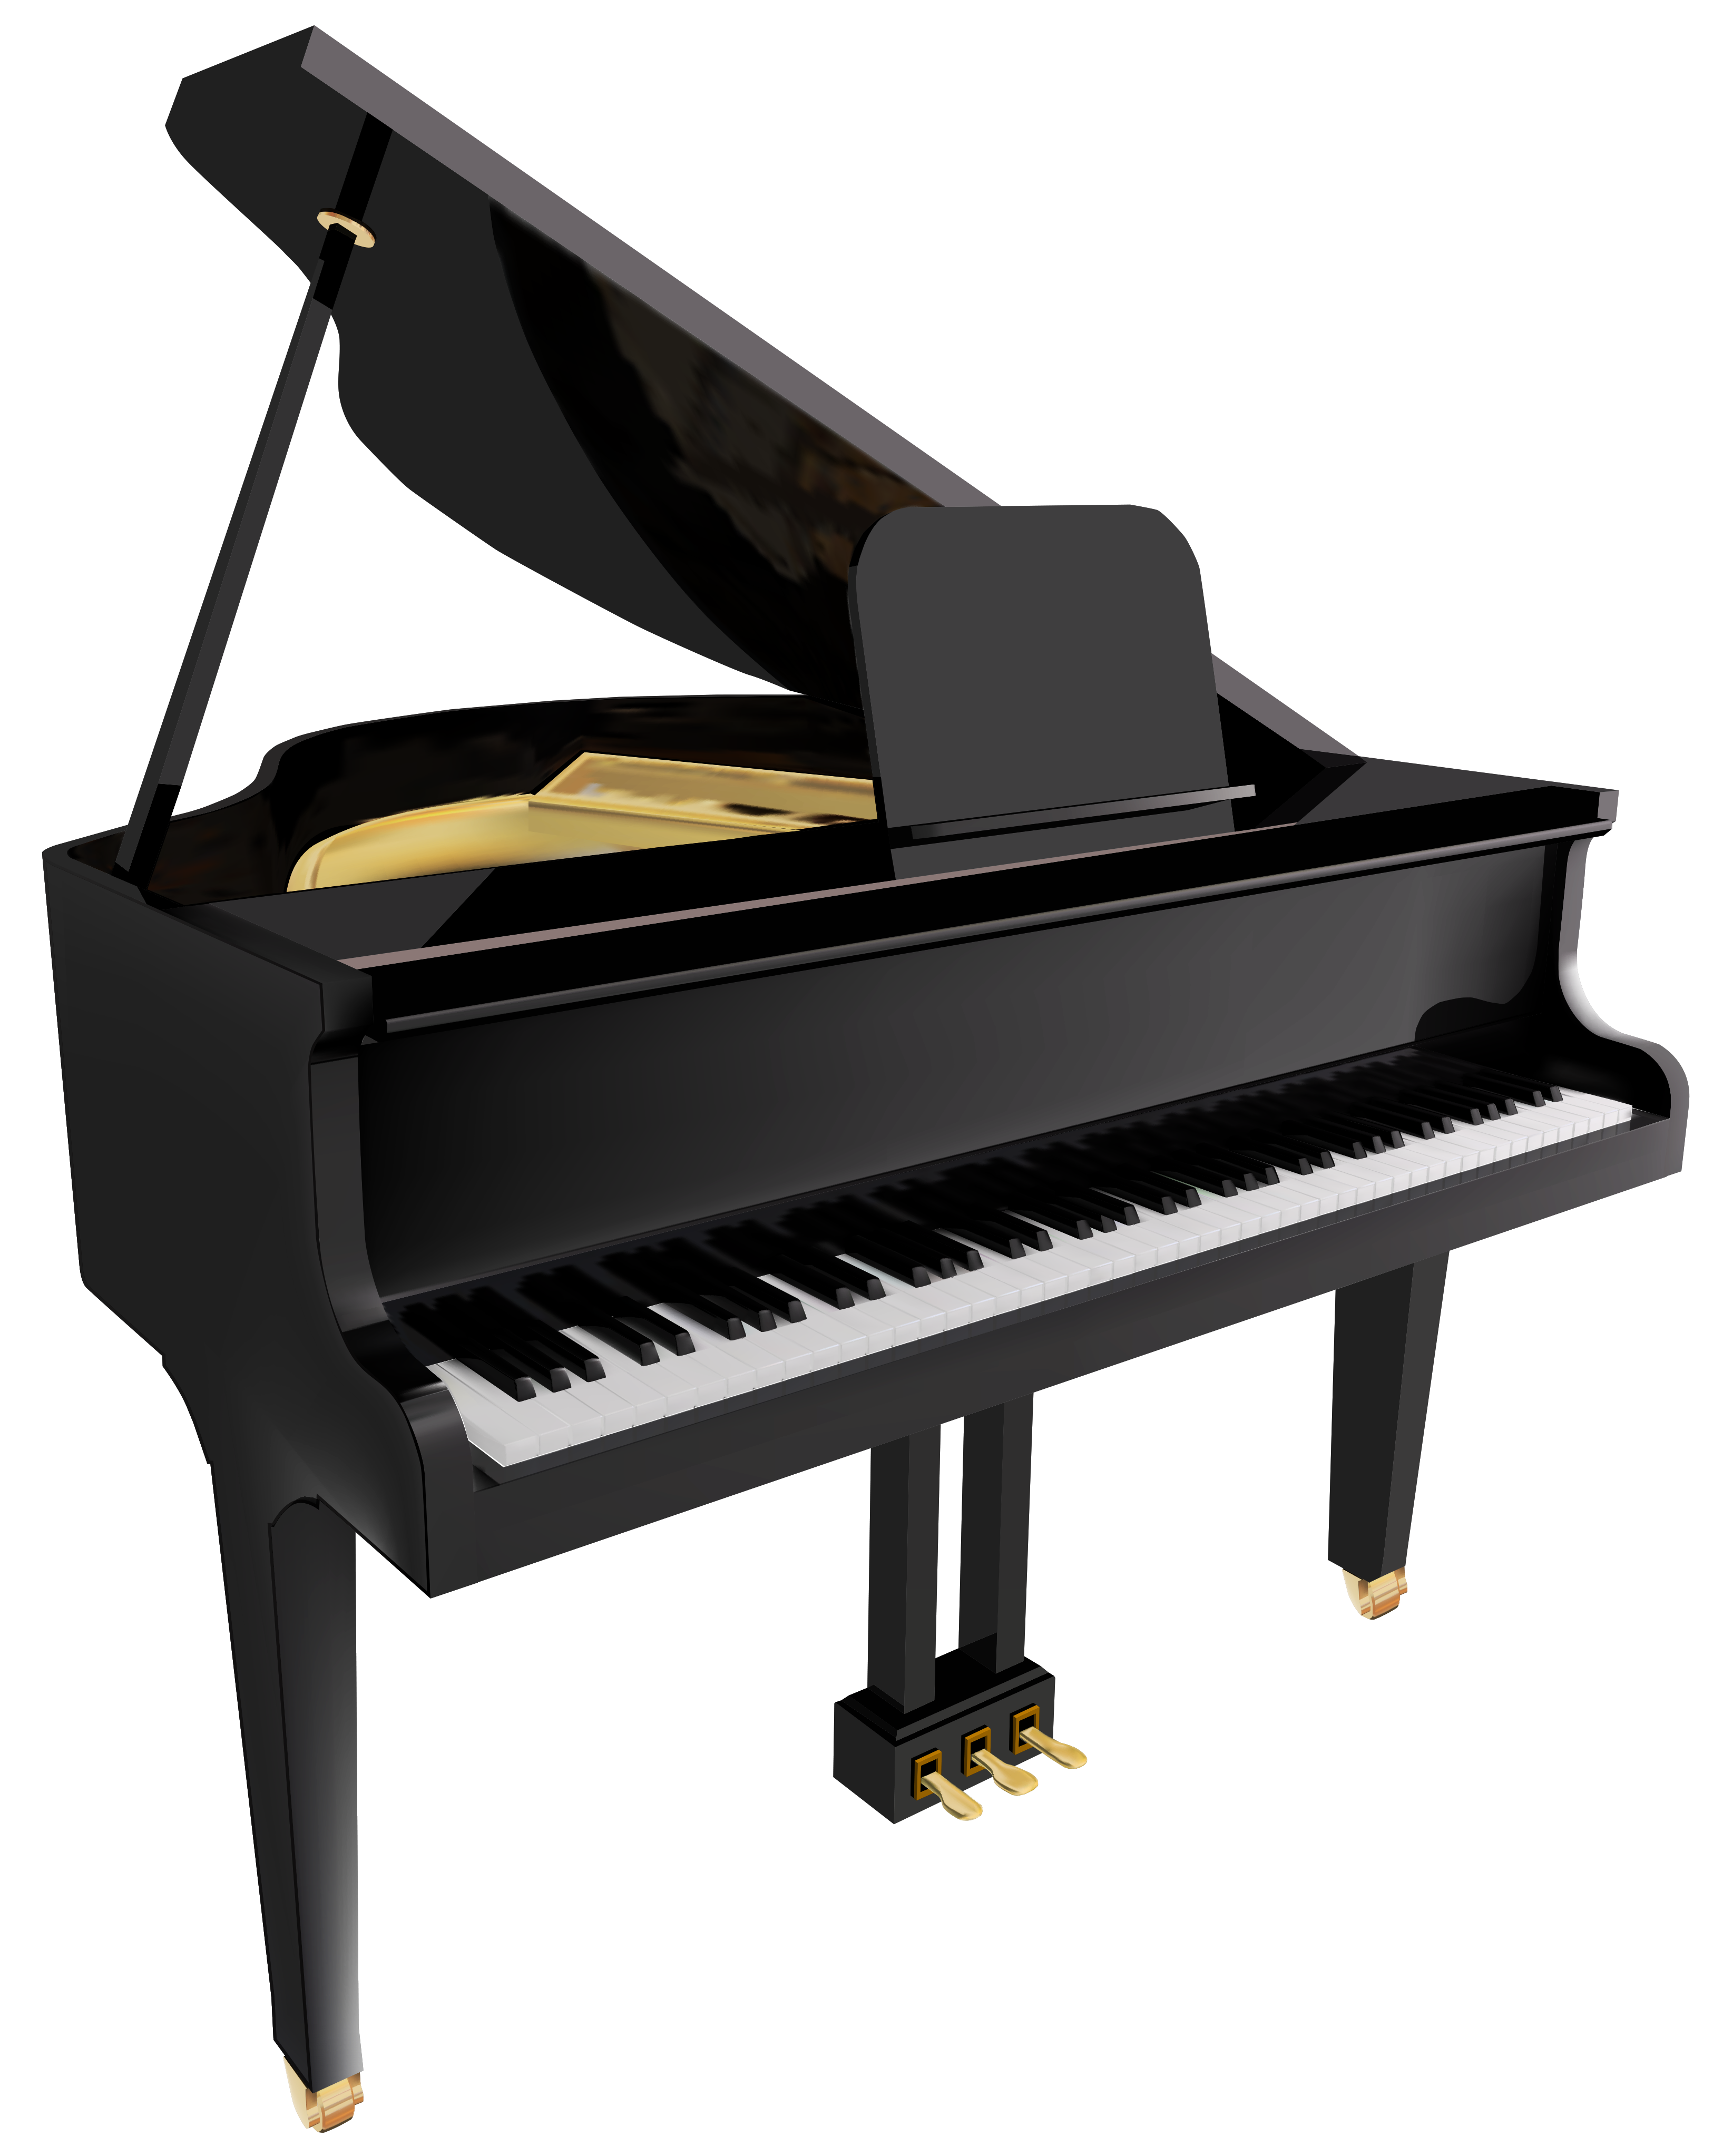 transparent download Piano clip art free. Musical keyboard clipart